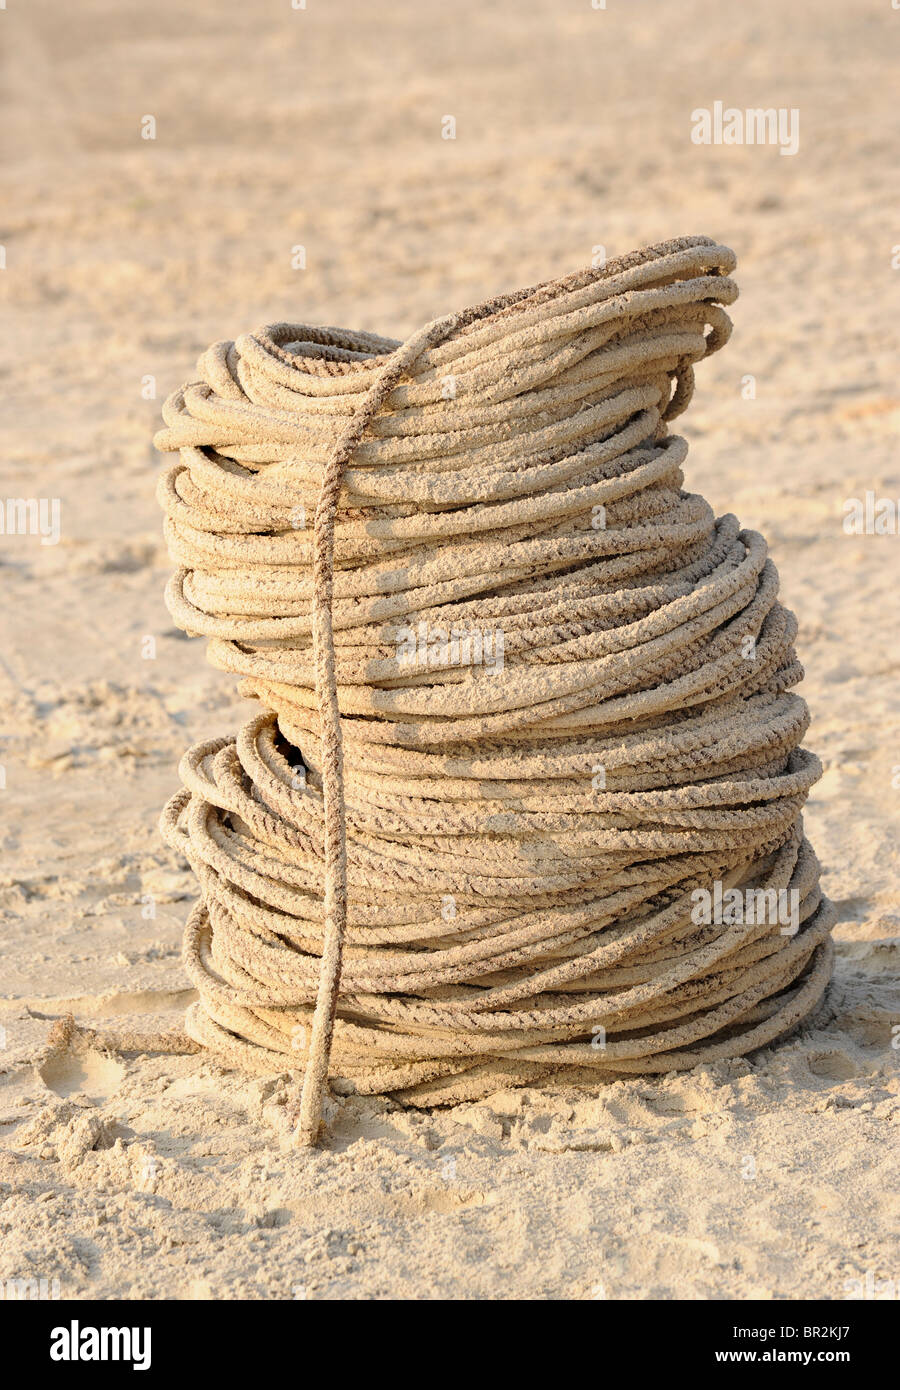 Coil of sandy rope on a beach - Stock Image